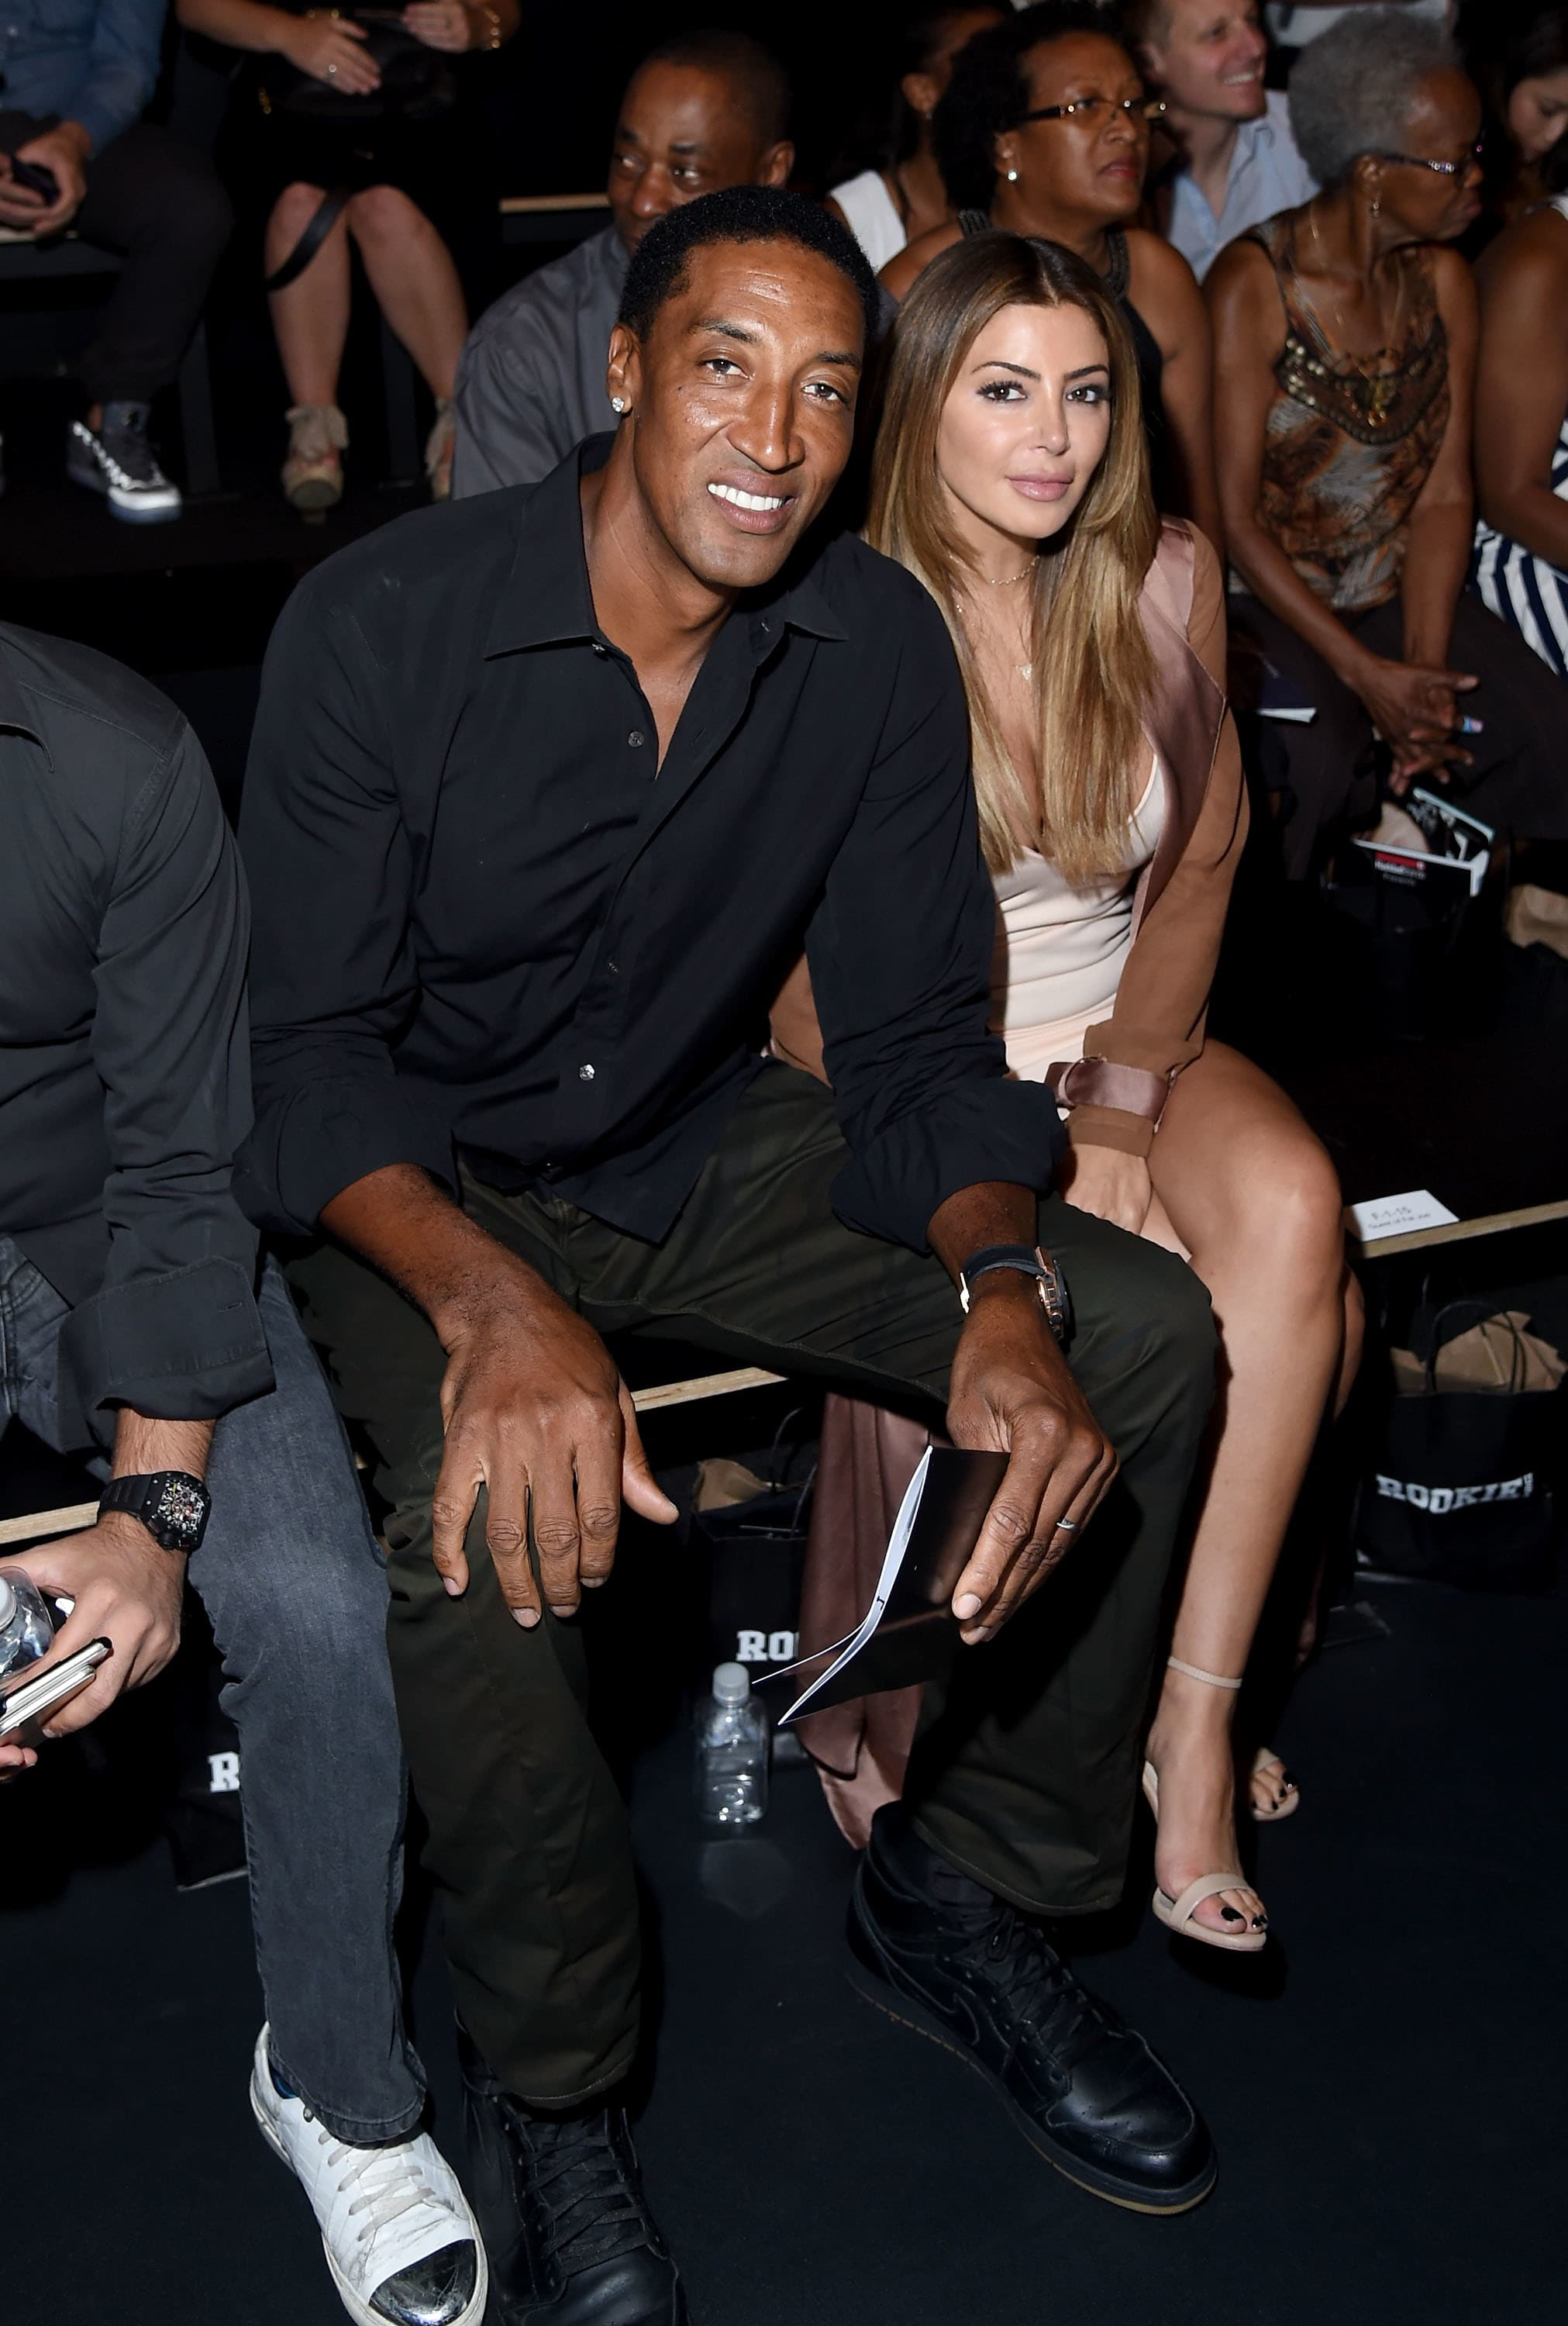 Is a cute Larsa Pippen nude photos 2019